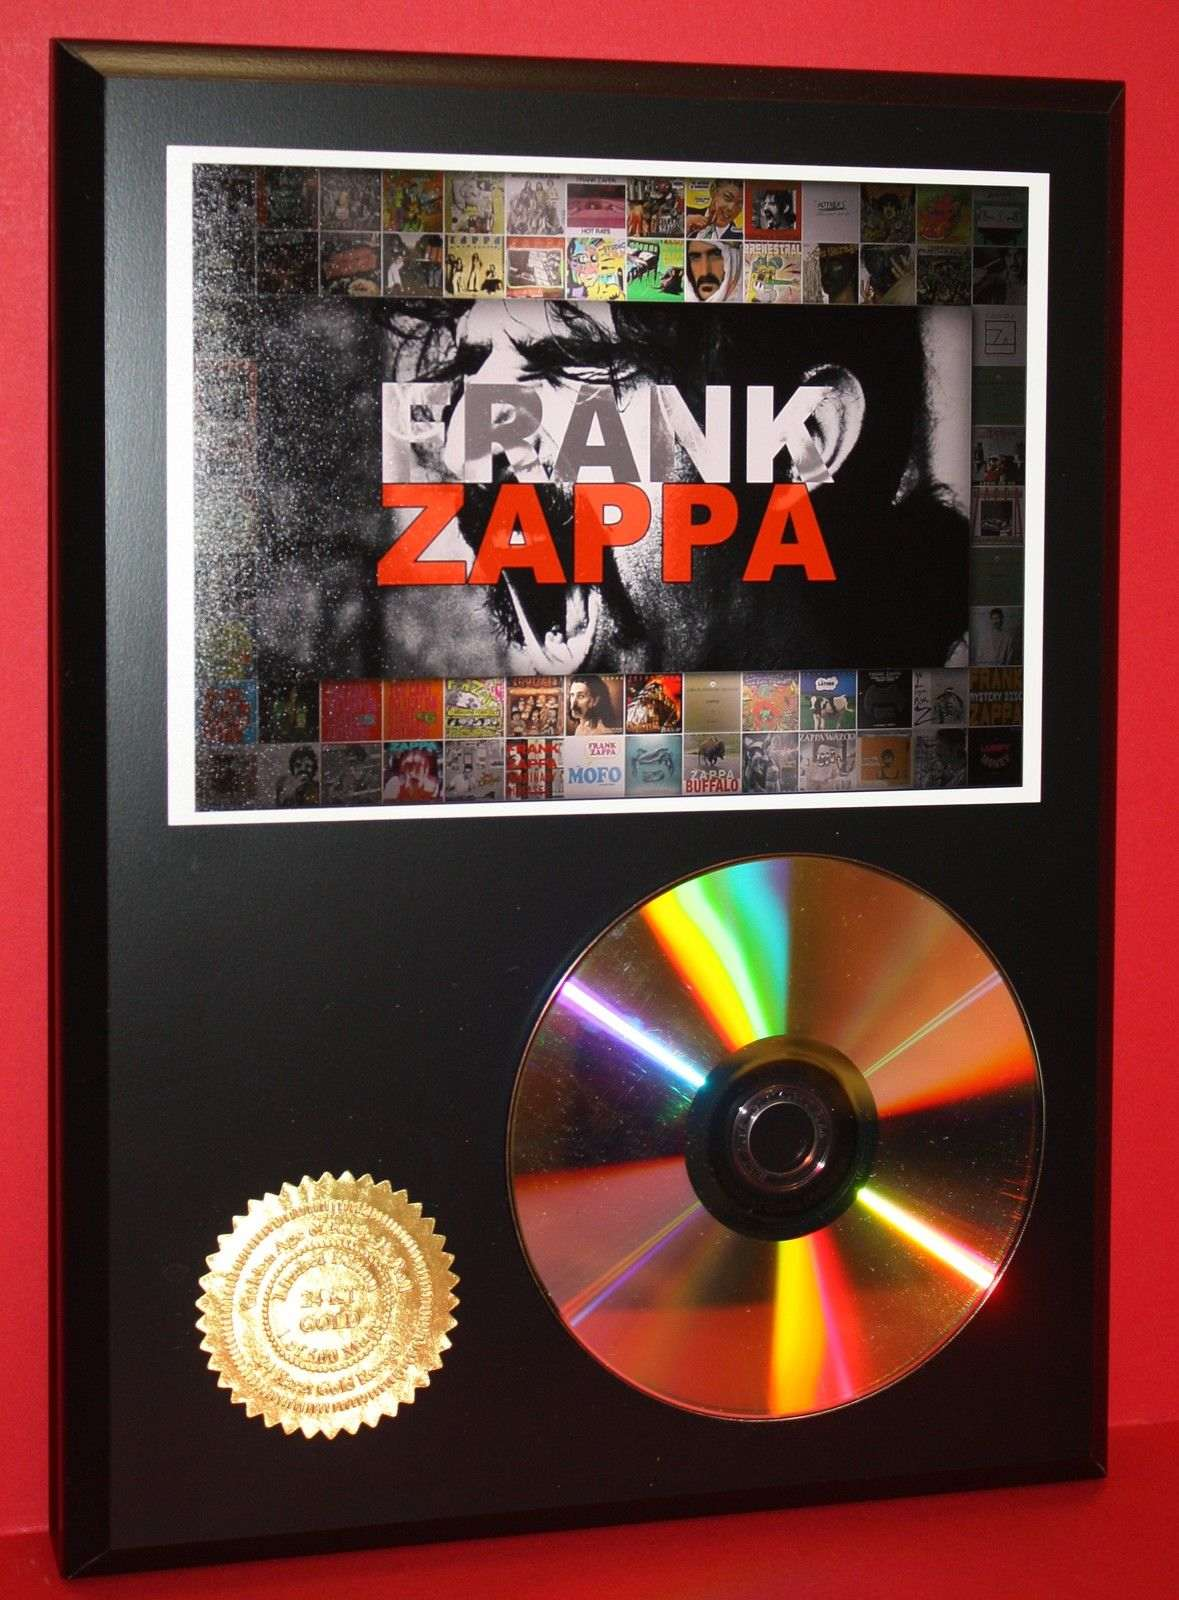 frank zappa 24kt gold cd disc collectible rare award quality plaque gift gold record awards. Black Bedroom Furniture Sets. Home Design Ideas